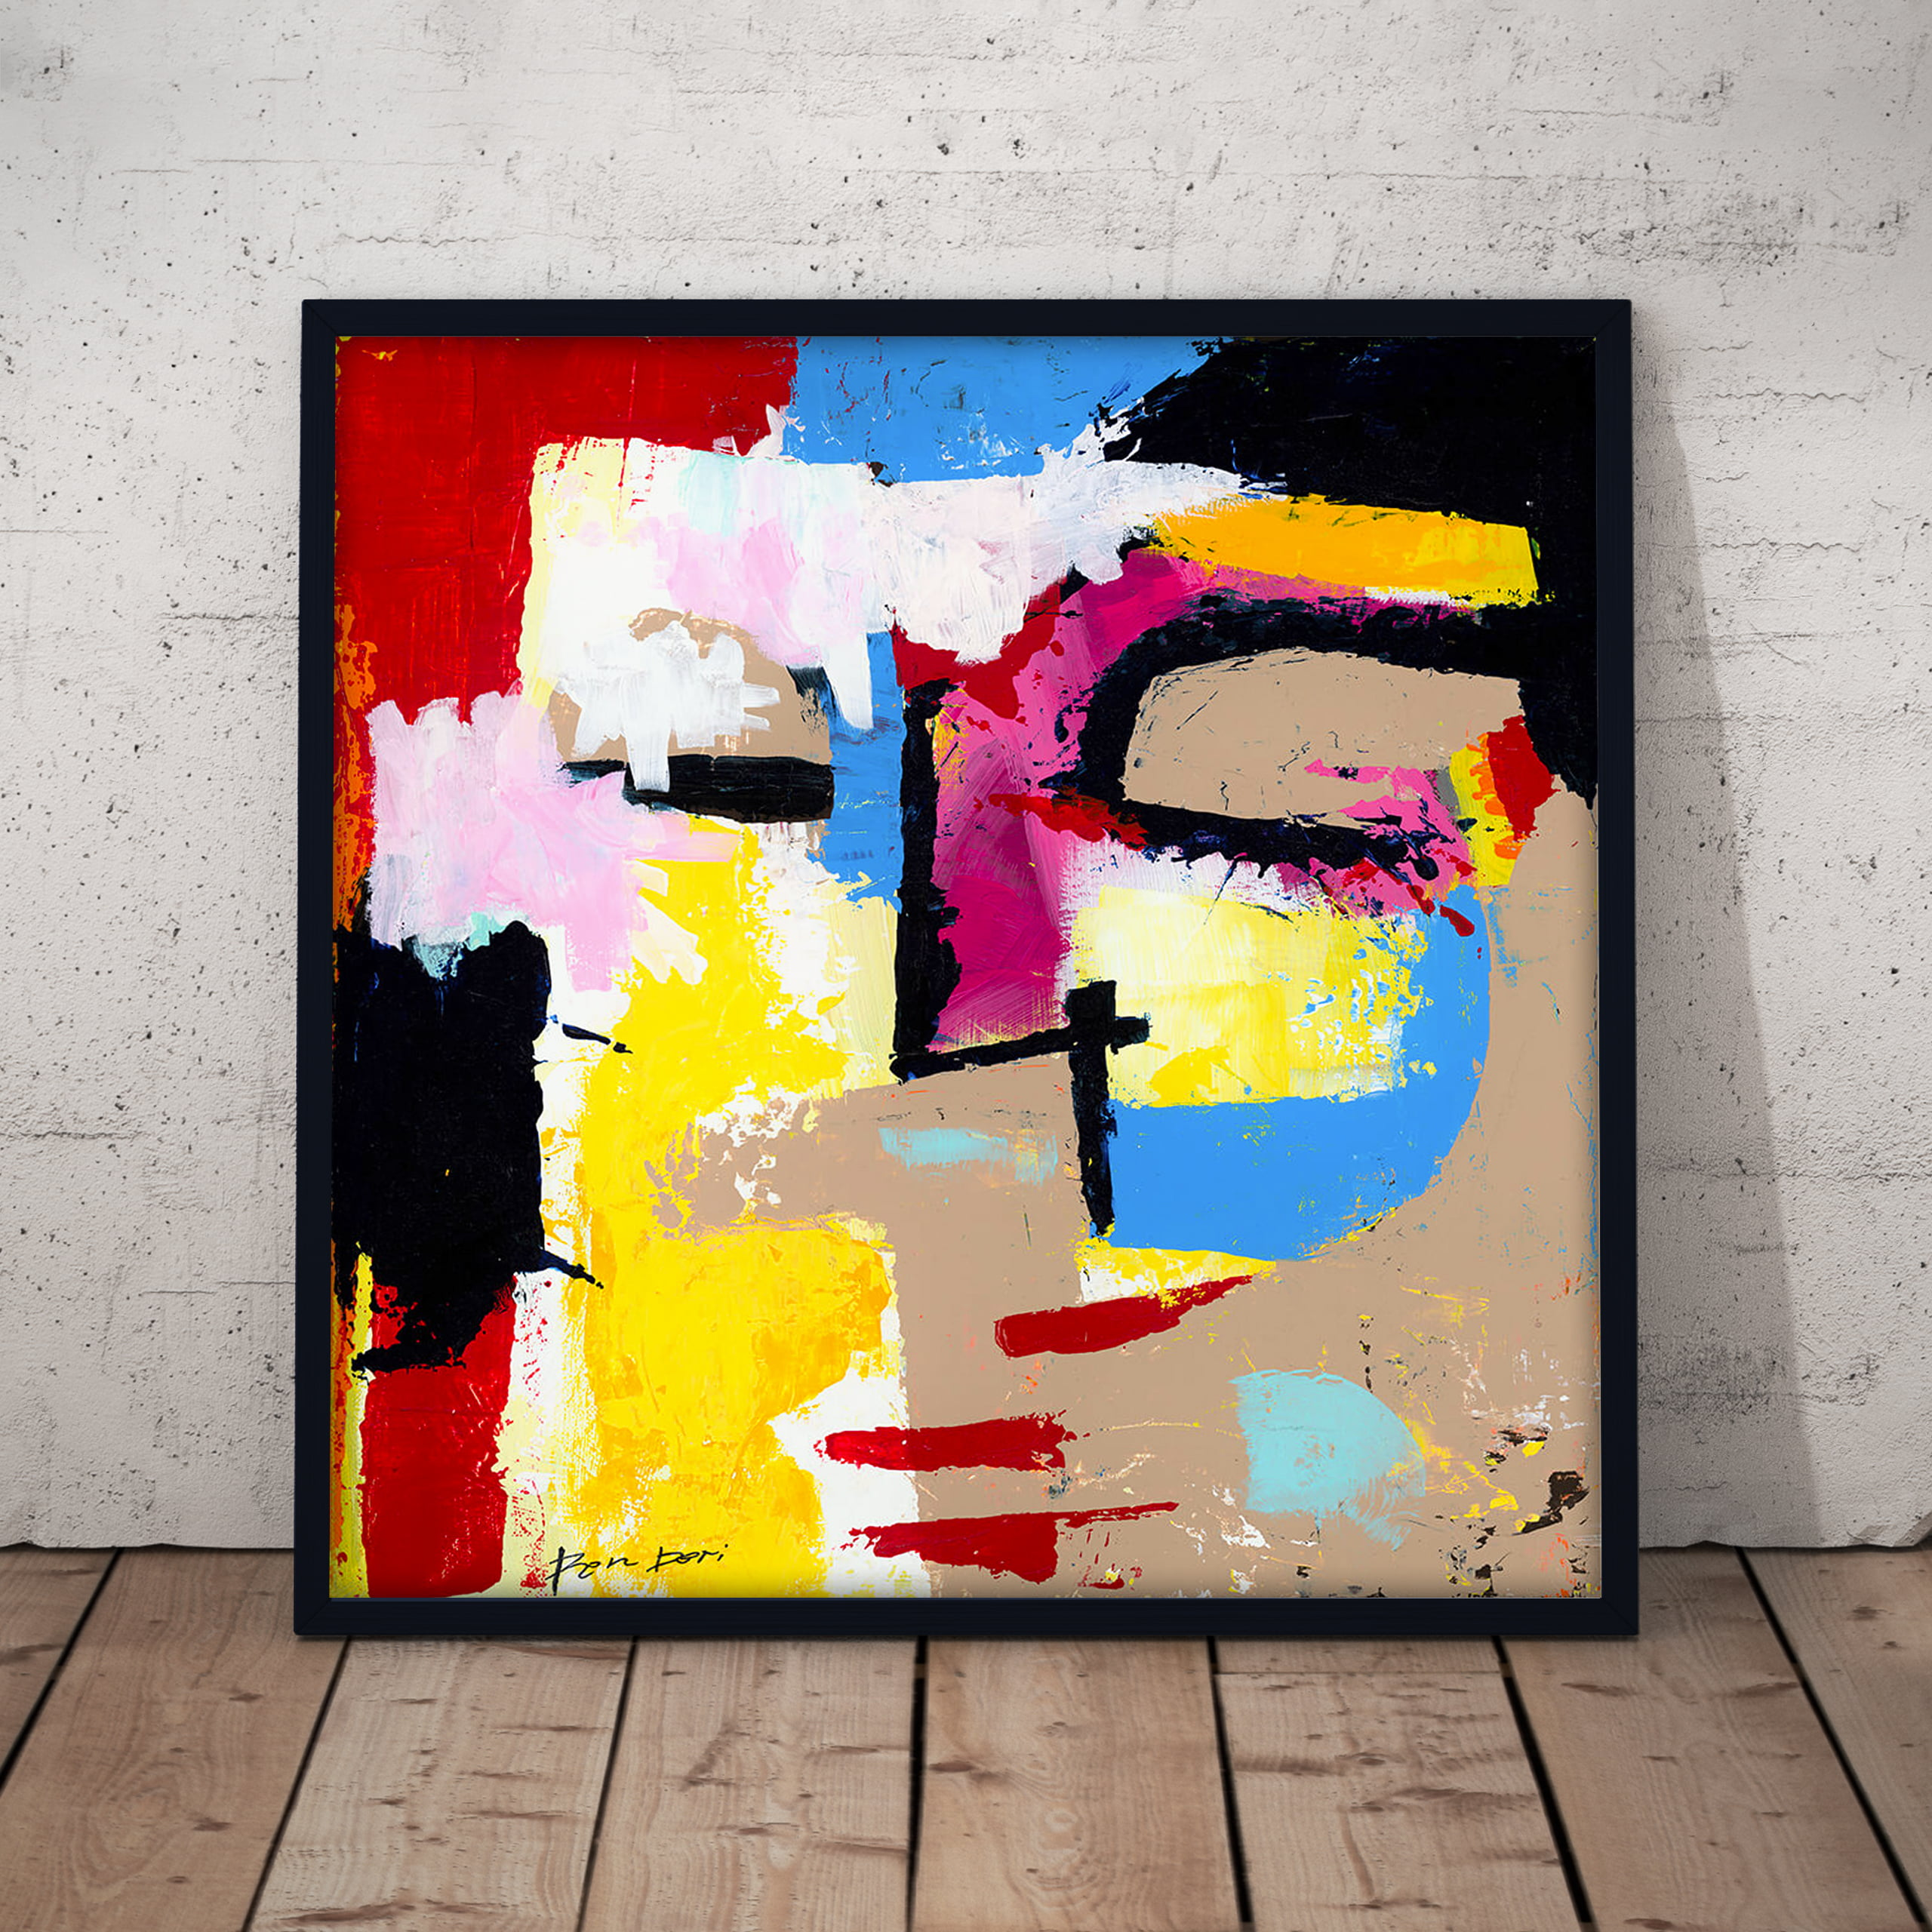 Disturbia abstract art print on canvas by Ron Deri